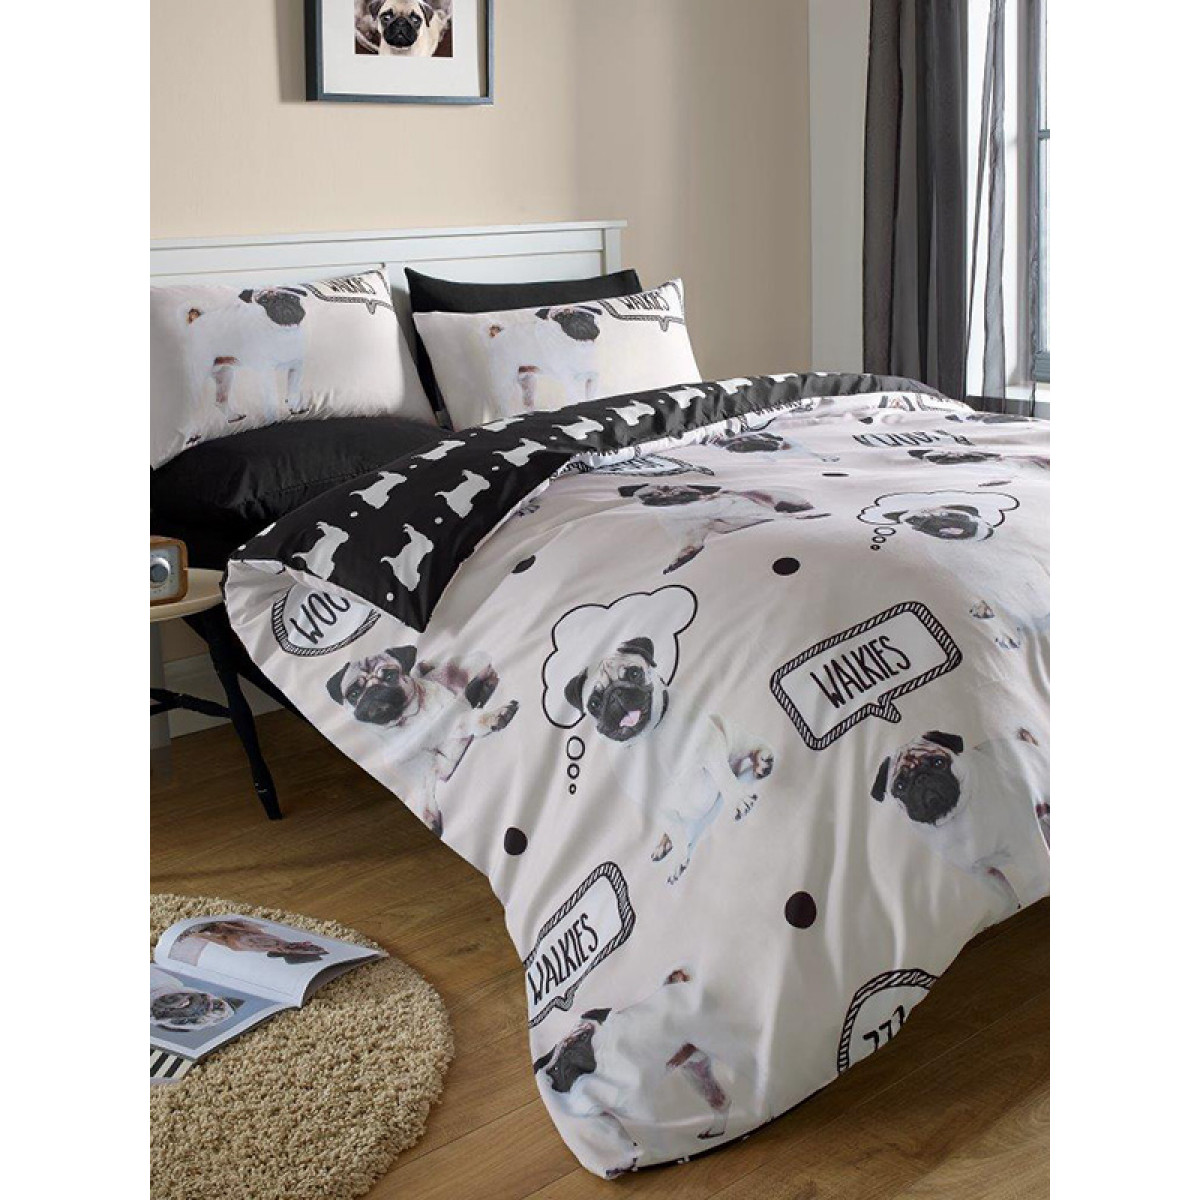 Pug Walkies Single Duvet Cover Bedding Bedroom